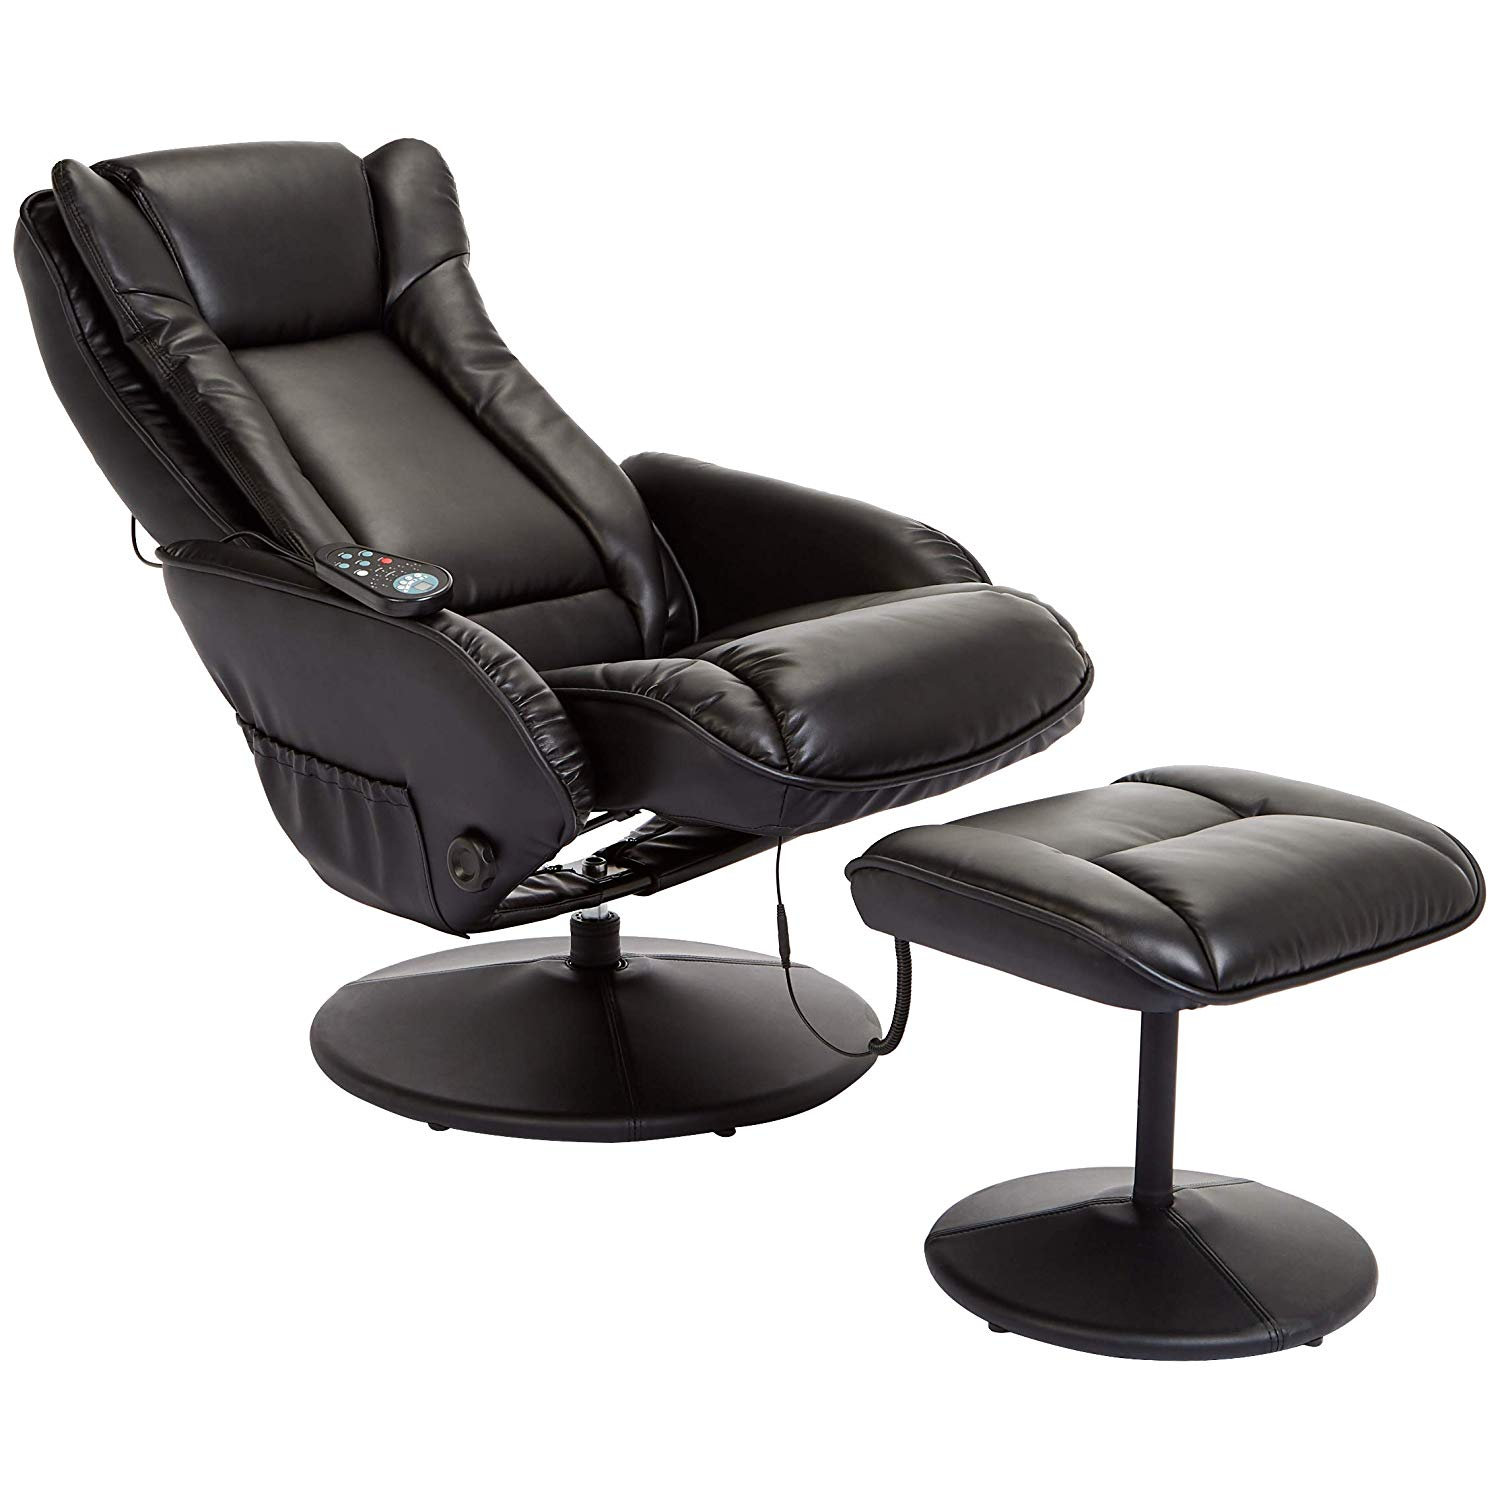 Massaging Leather Recliner Massage Chair